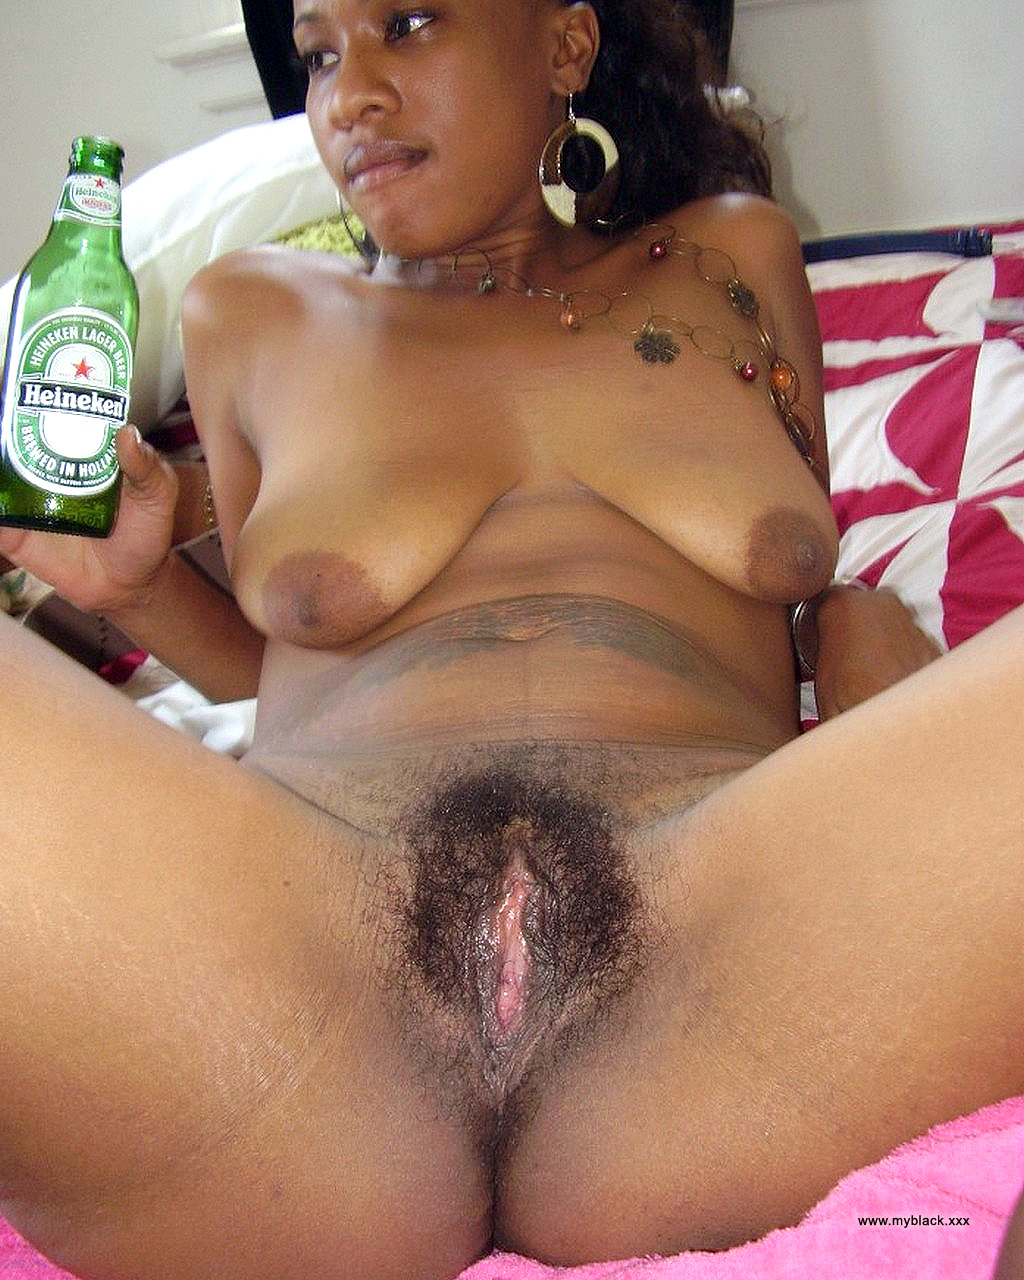 Hairy Vagina Black Girls